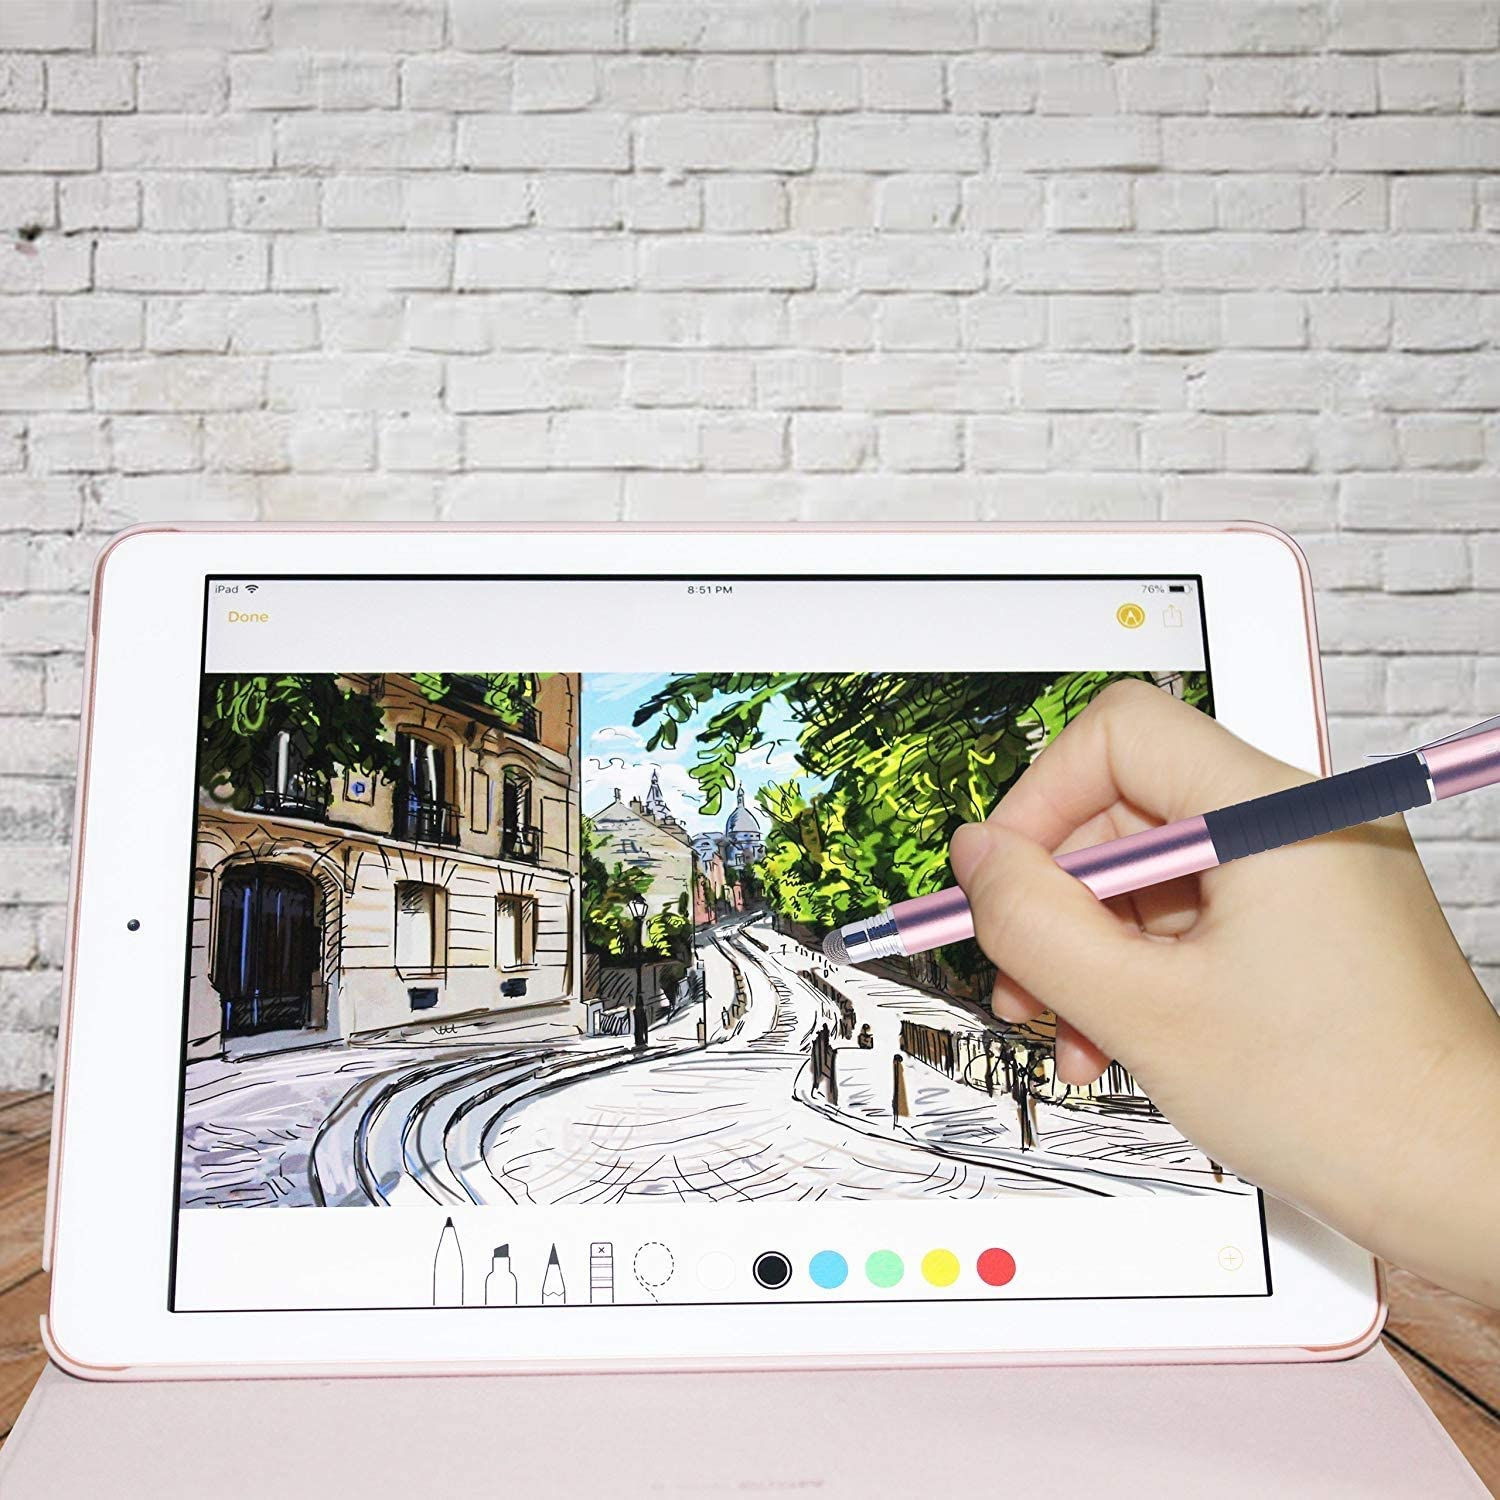 Stylus Pen Touchscreen Pencil with Fine Point Disc 100/% Compatible with All capacitive Touch Screen Devices Including iPad iPhone Choose from Pink-Rose